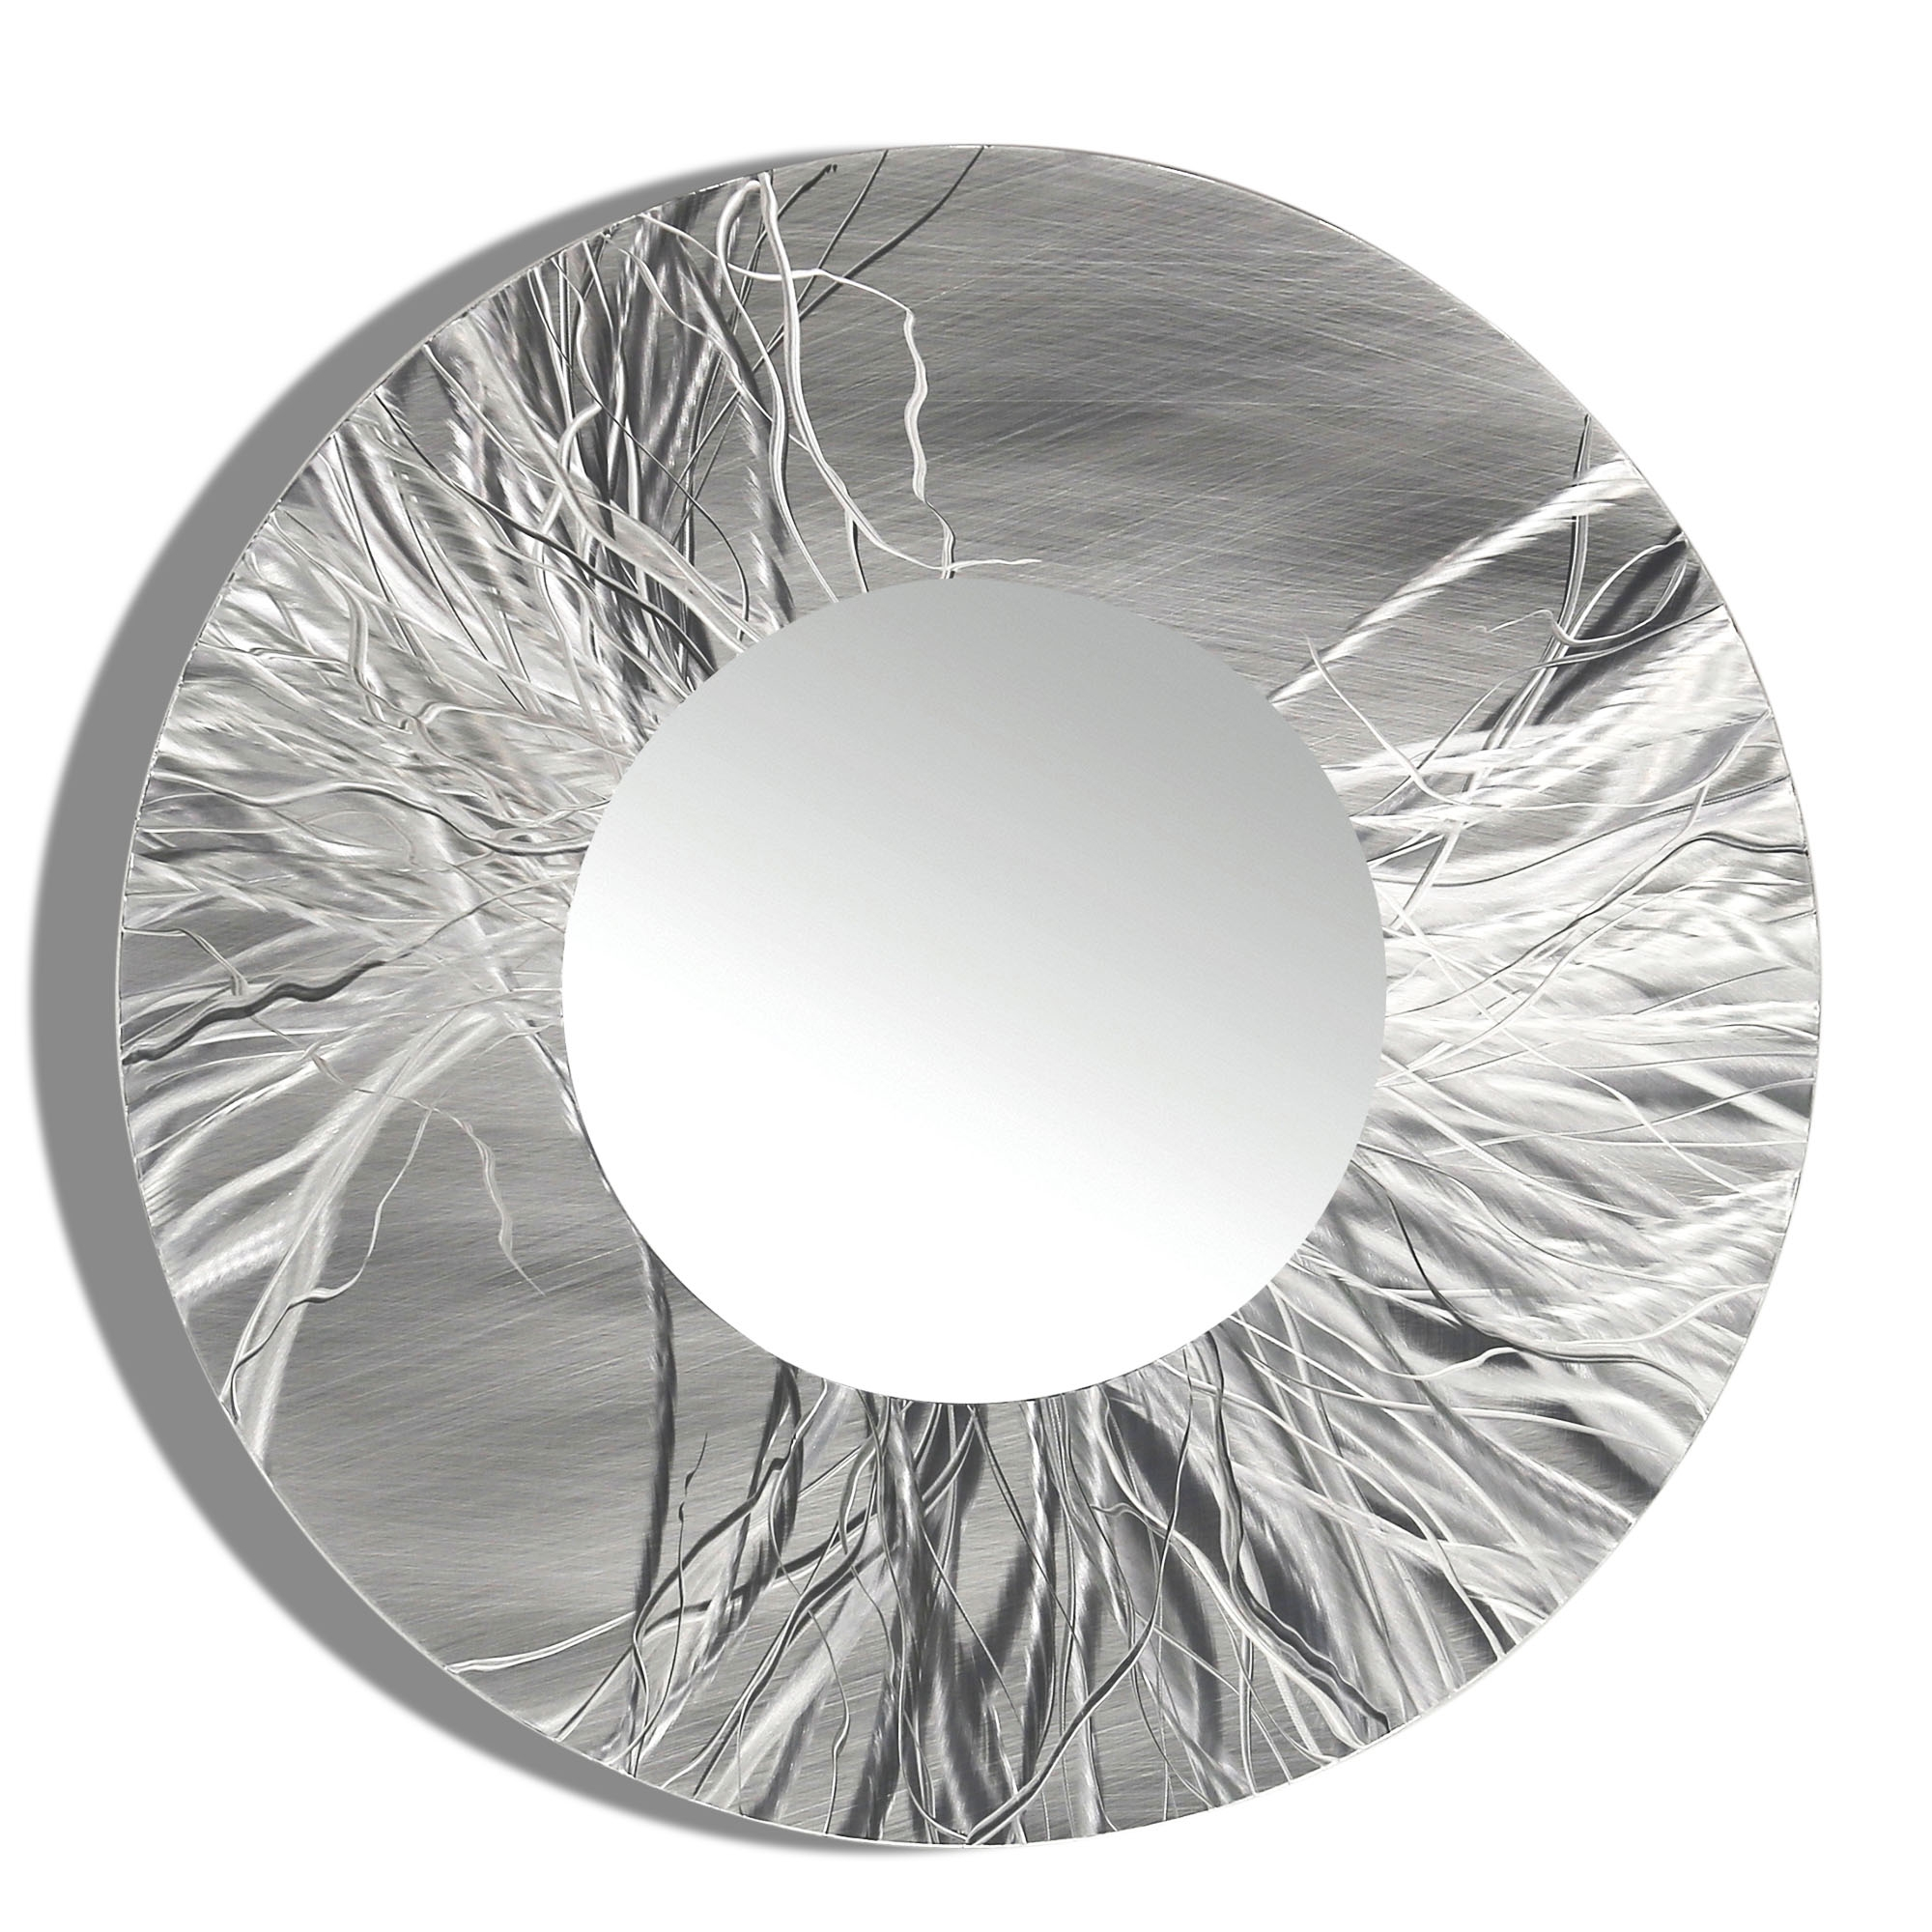 Mirror 104 Round Silver Contemporary Metal Wall Art Round Mirror Inside Contemporary Round Mirror (View 11 of 15)